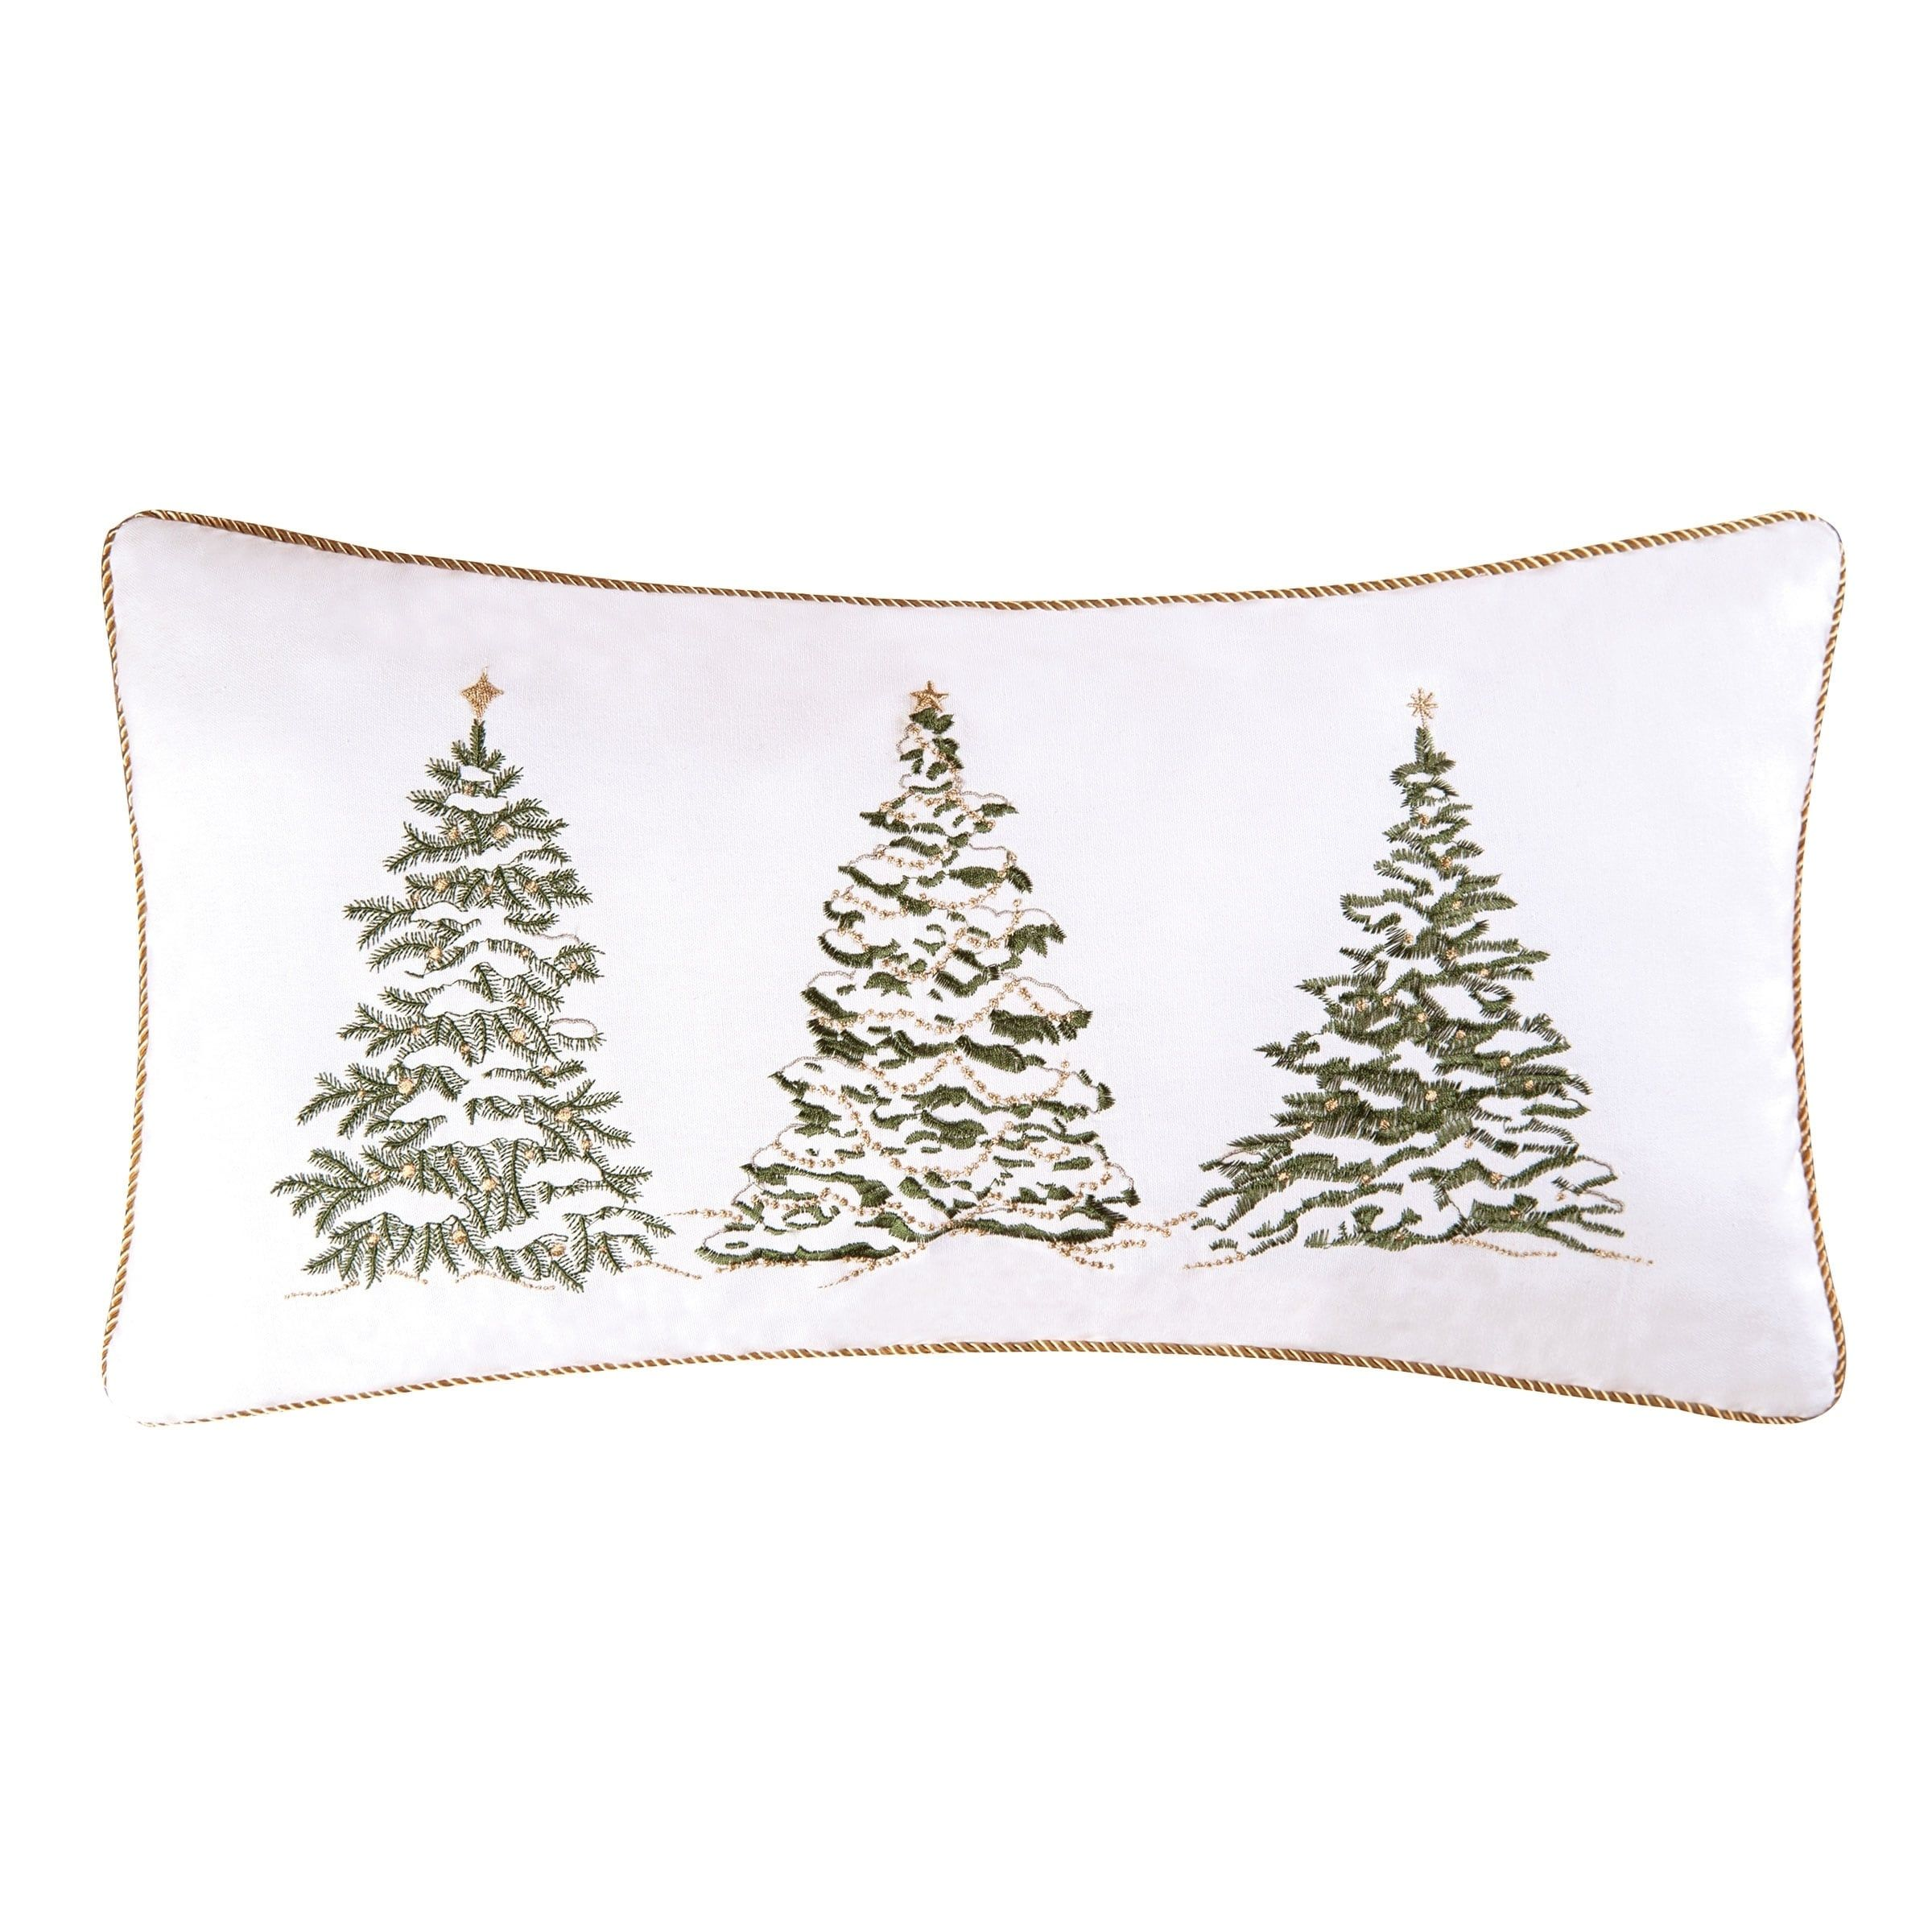 Enterprises Golden Greenery Embroidered Pillow 12x24 Multi Throw Pillows Christmas Embroidered Pillow Embroidered Throw Pillows